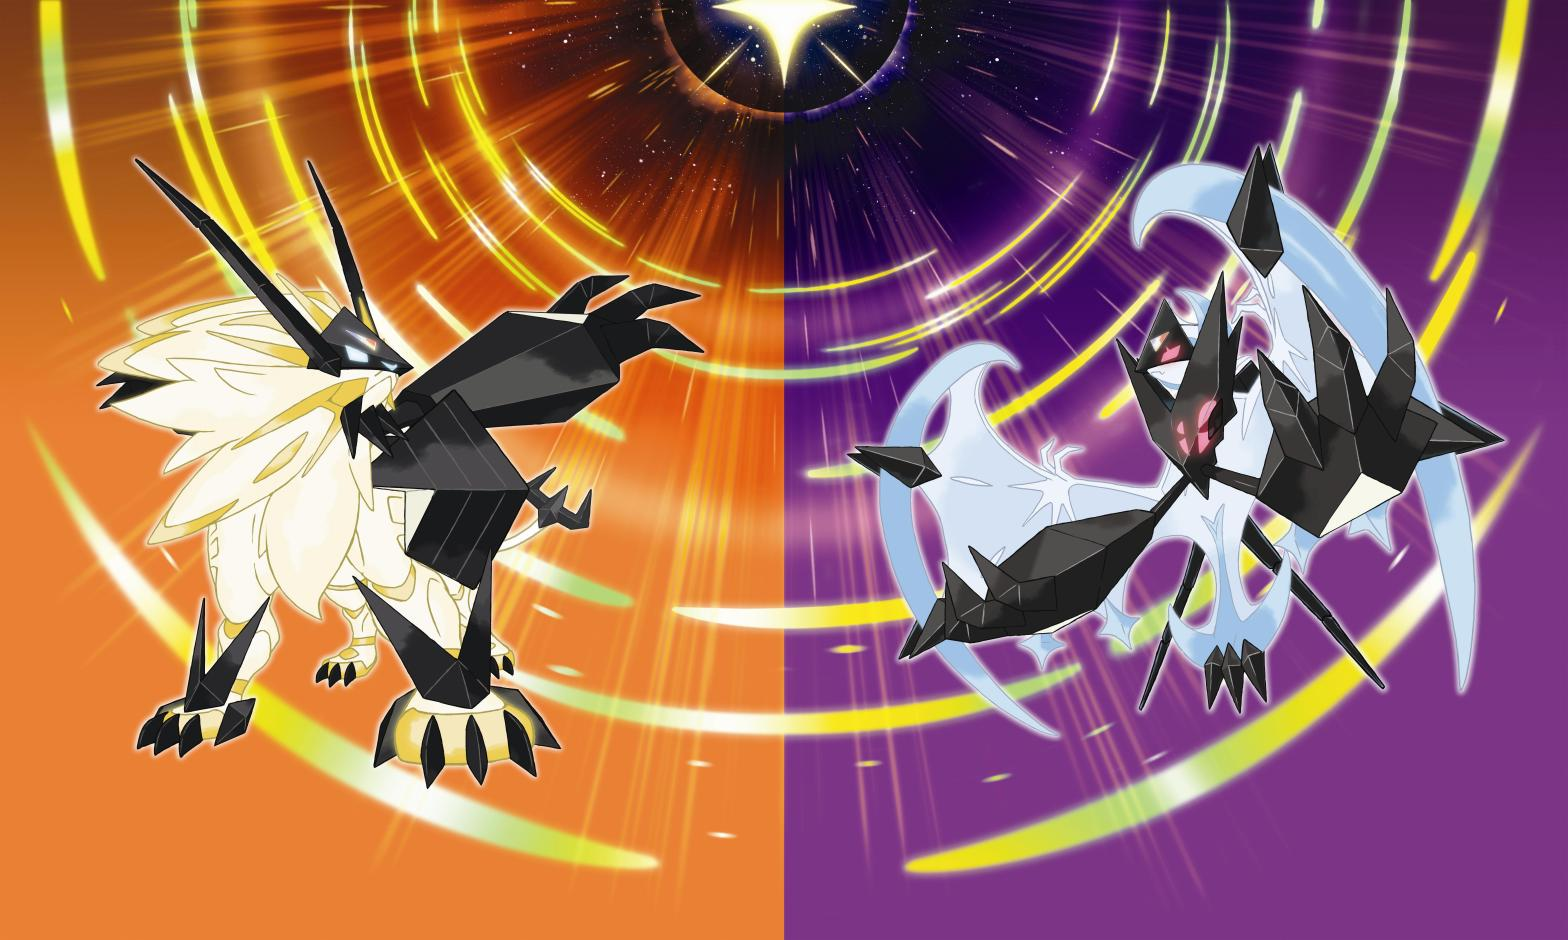 Pokémon Ultra Sun and Ultra Moon, Games, Online Games, Video Games